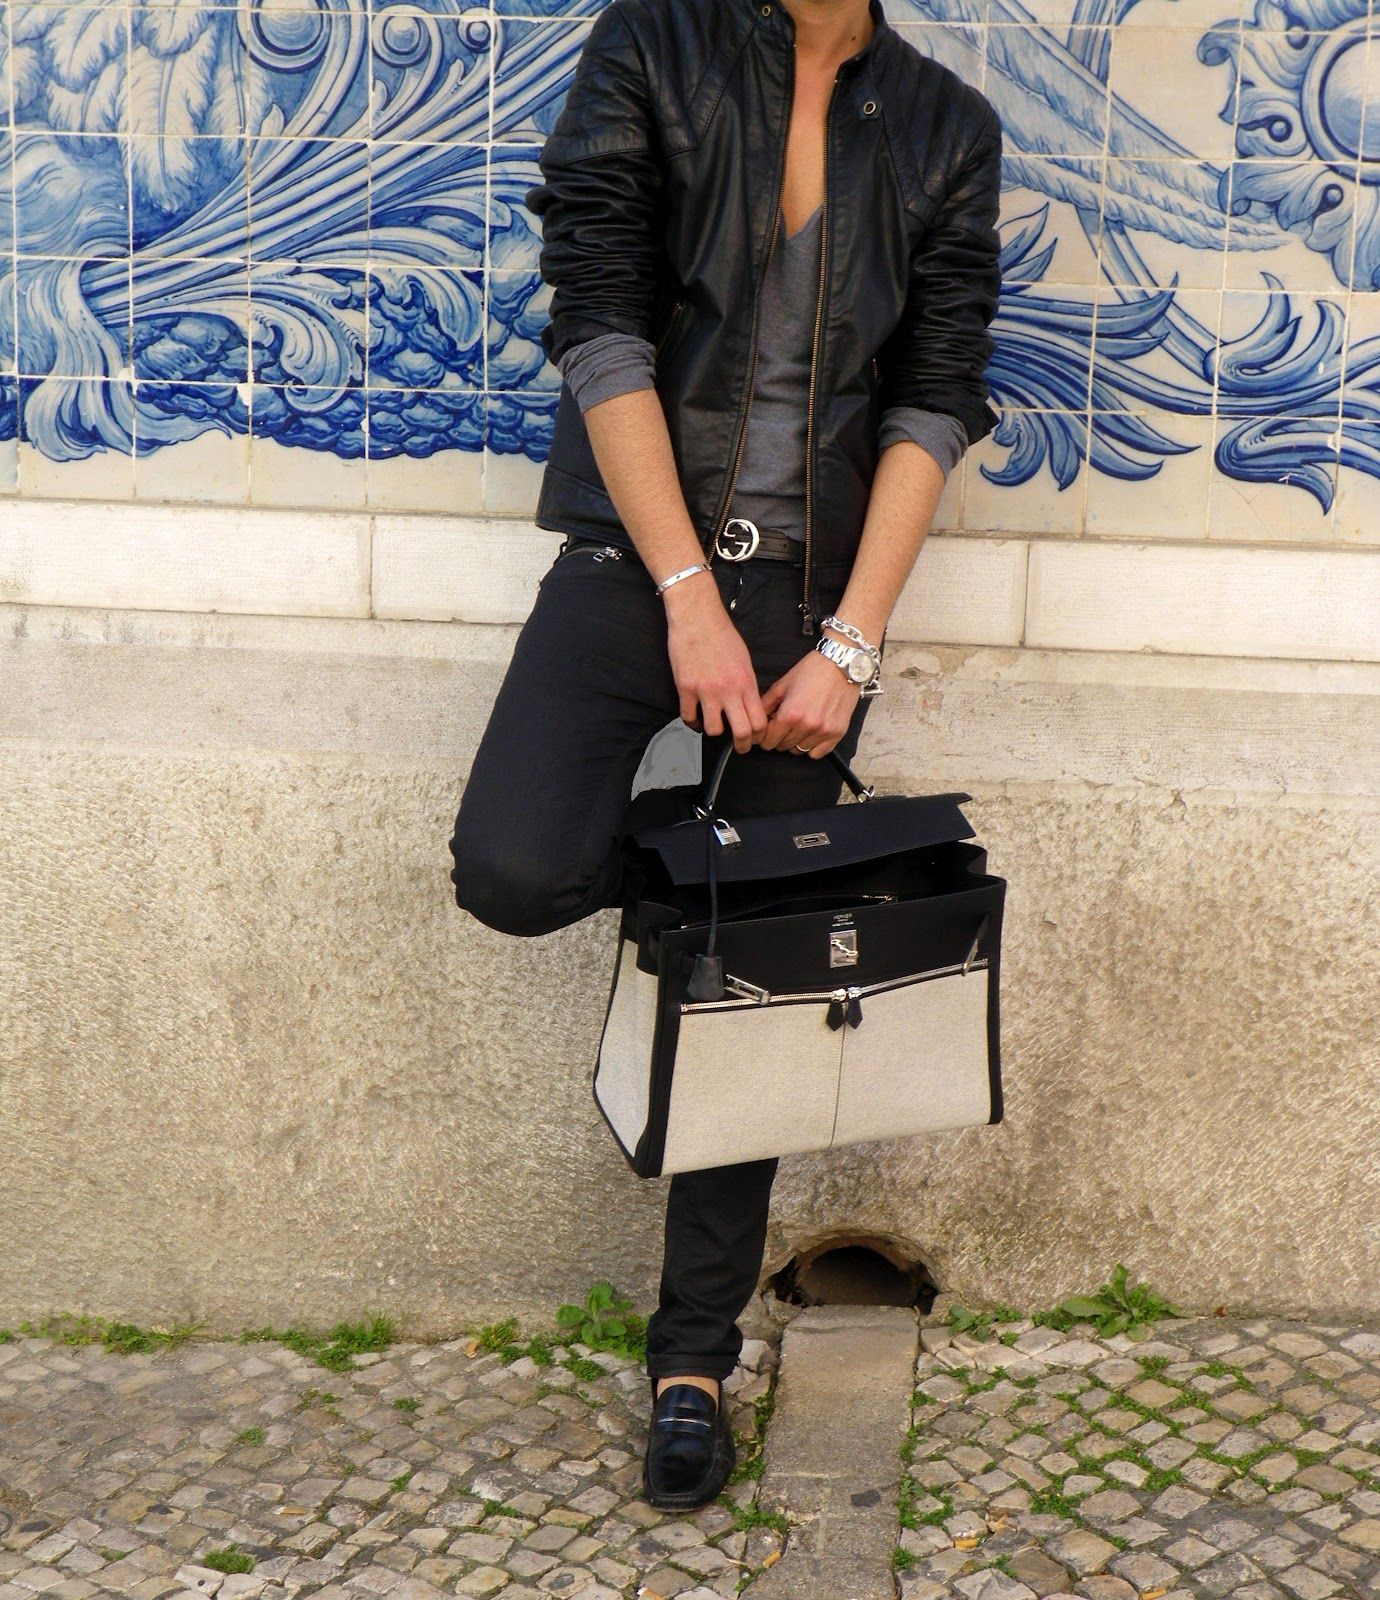 c319a44a8198 Hermes kelly lakis - Opinion on Kelly for guys.. - Page 8 - PurseForum